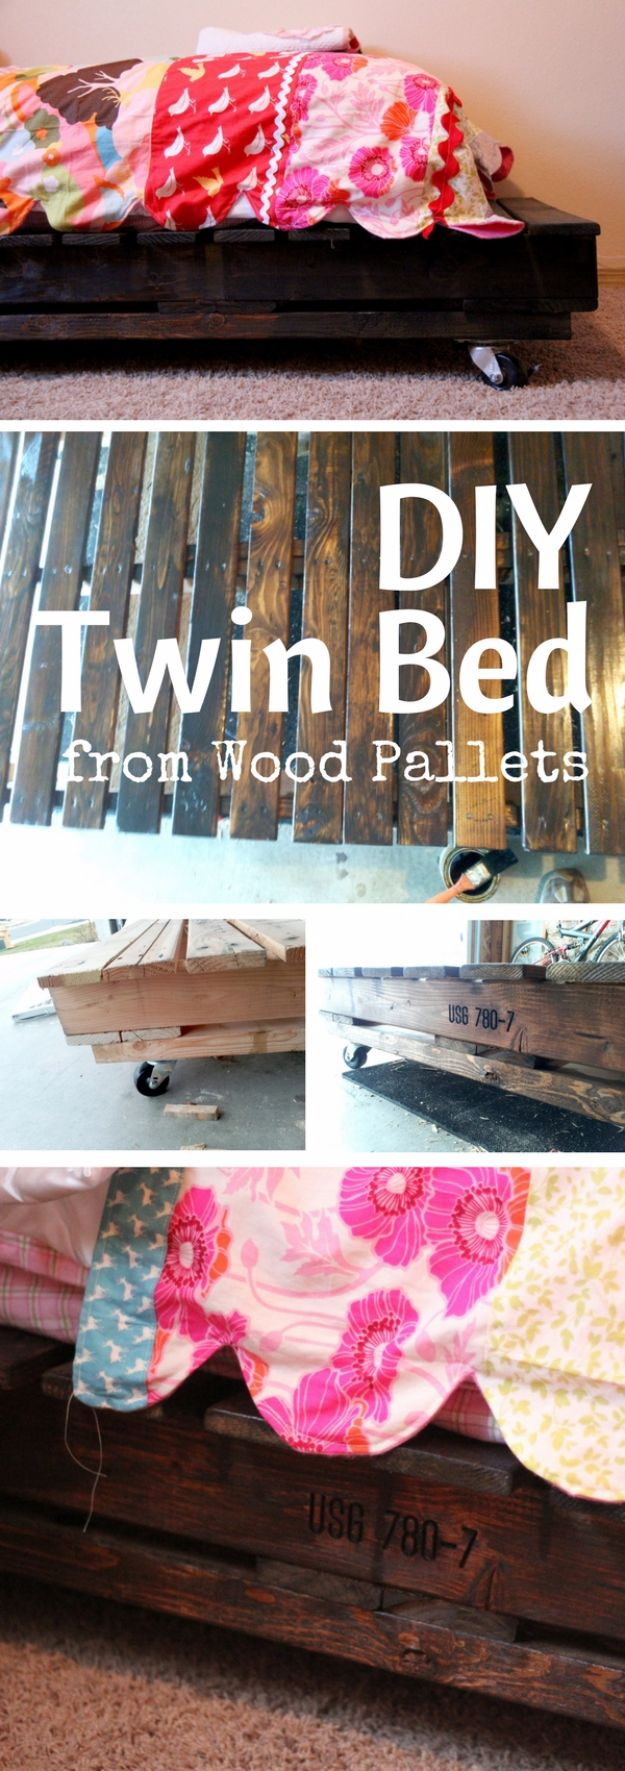 DIY Platform Beds - DIY Twin Bed from Wood Pallets - Easy Do It Yourself Bed Projects - Step by Step Tutorials for Bedroom Furniture - Learn How To Make Twin, Full, King and Queen Size Platforms - With Headboard, Storage, Drawers, Made from Pallets - Cheap Ideas You Can Make on a Budget